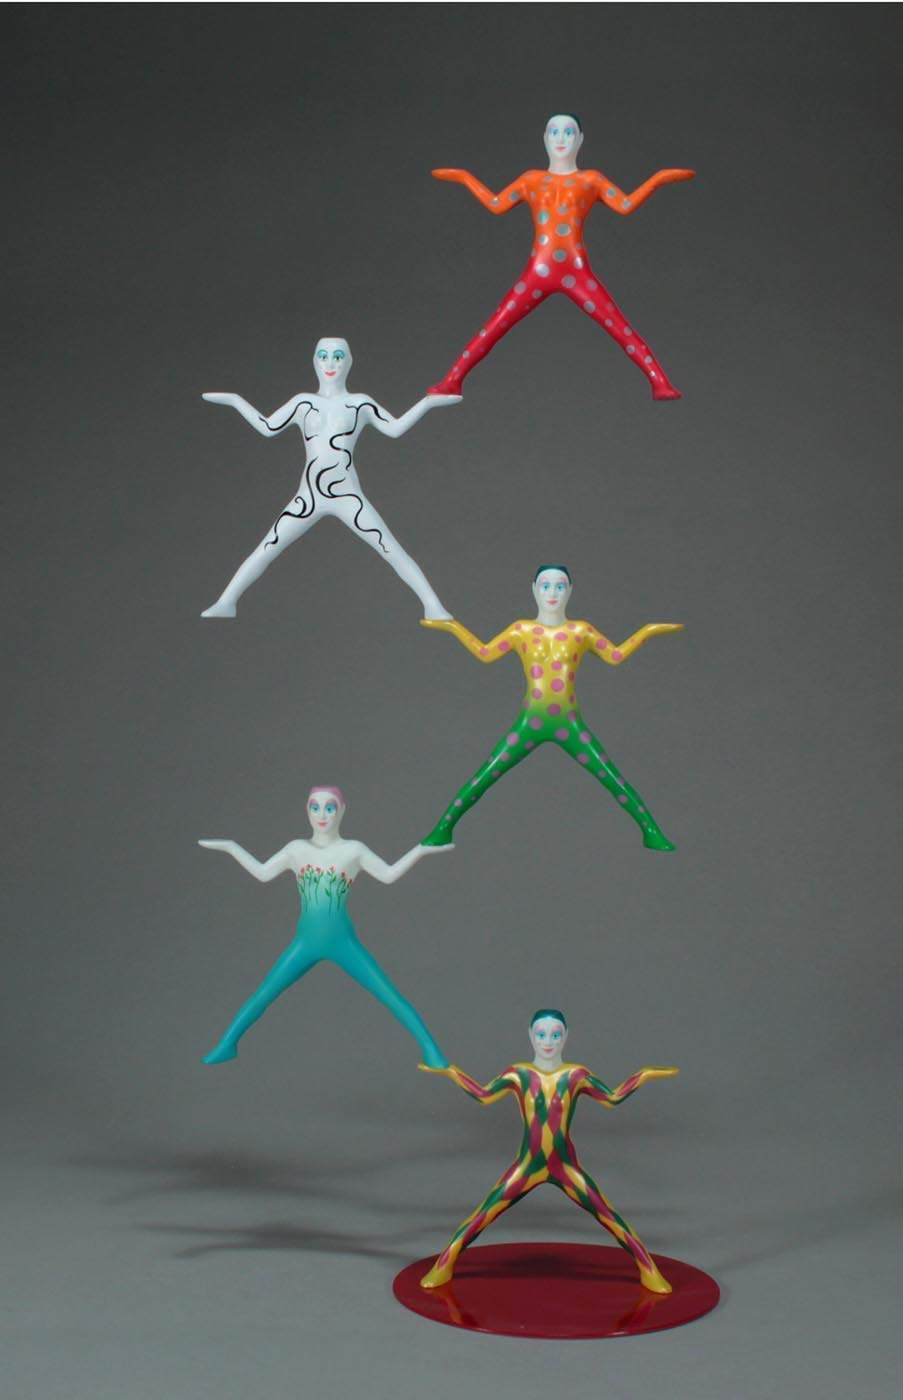 MAGNETIC ACROBATS EQUILIQUE 2 FIGURE SET Interactive Sculpture from JOHN PERRY